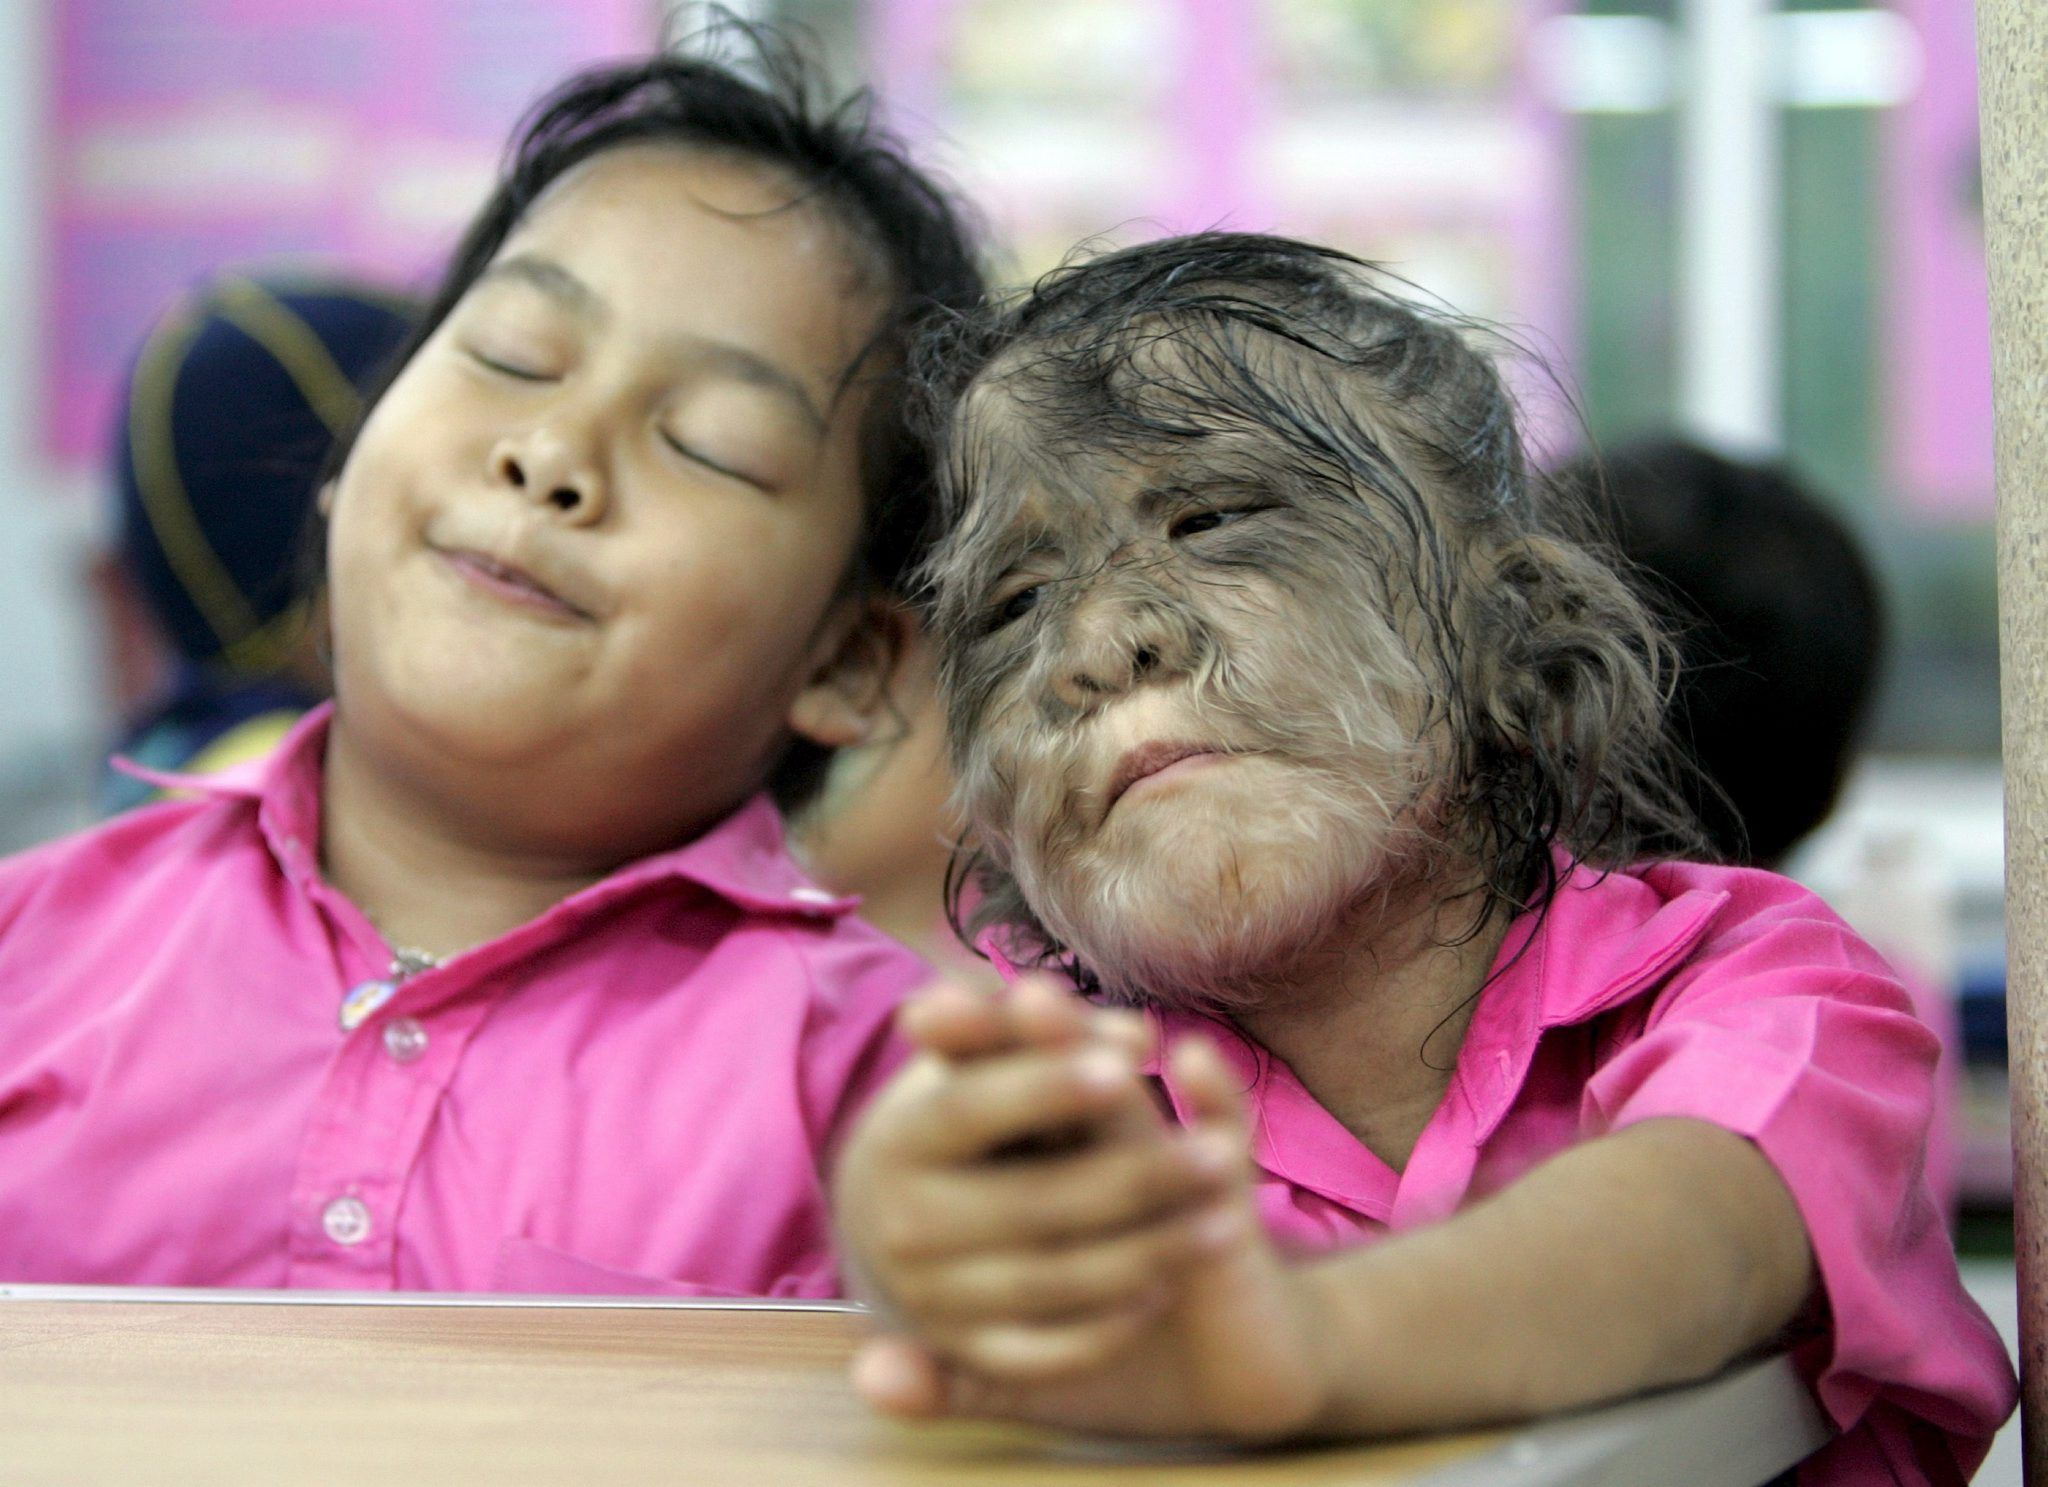 THAI GIRL WITH RARE GENETIC DISORDER BEATS DIFFERENCE WITH FAMILY AND FRIENDS LOVE